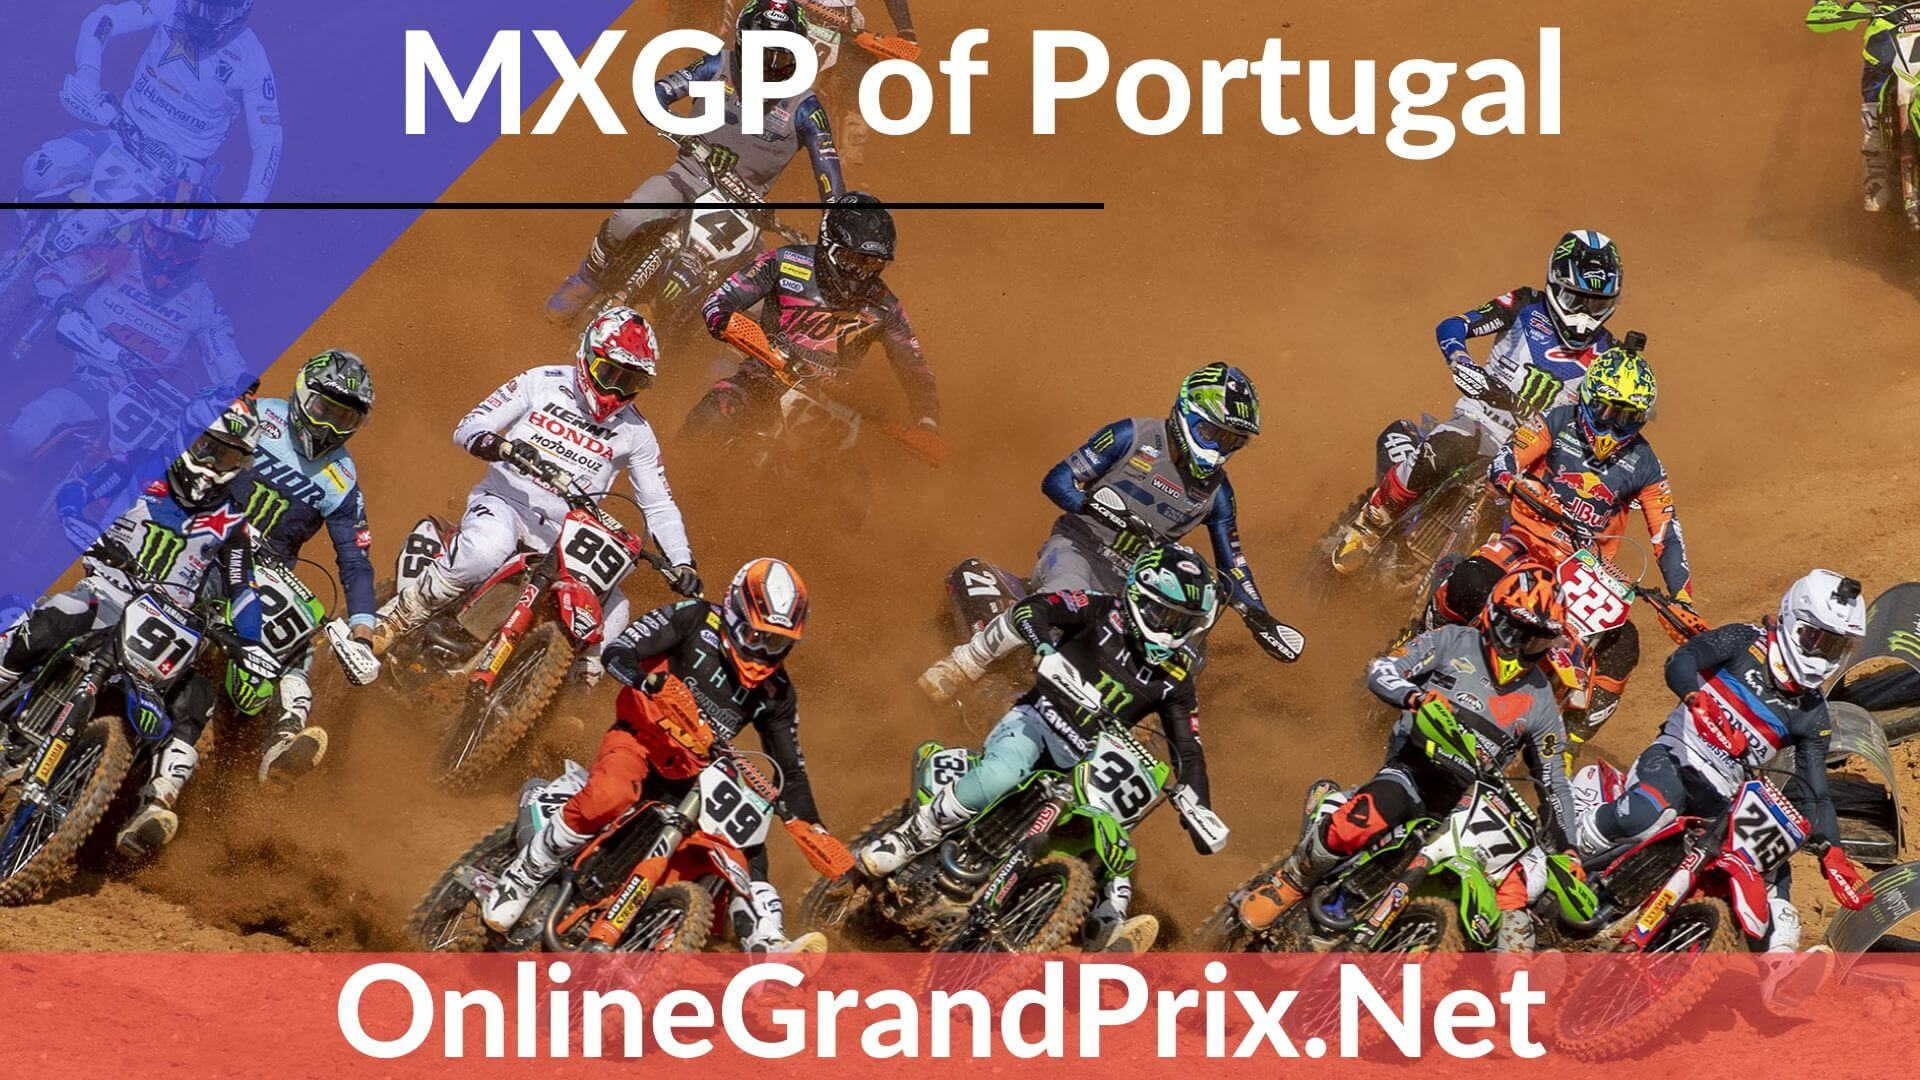 Portugal MXGP Live Stream 2020 | FIM MotoCross WC